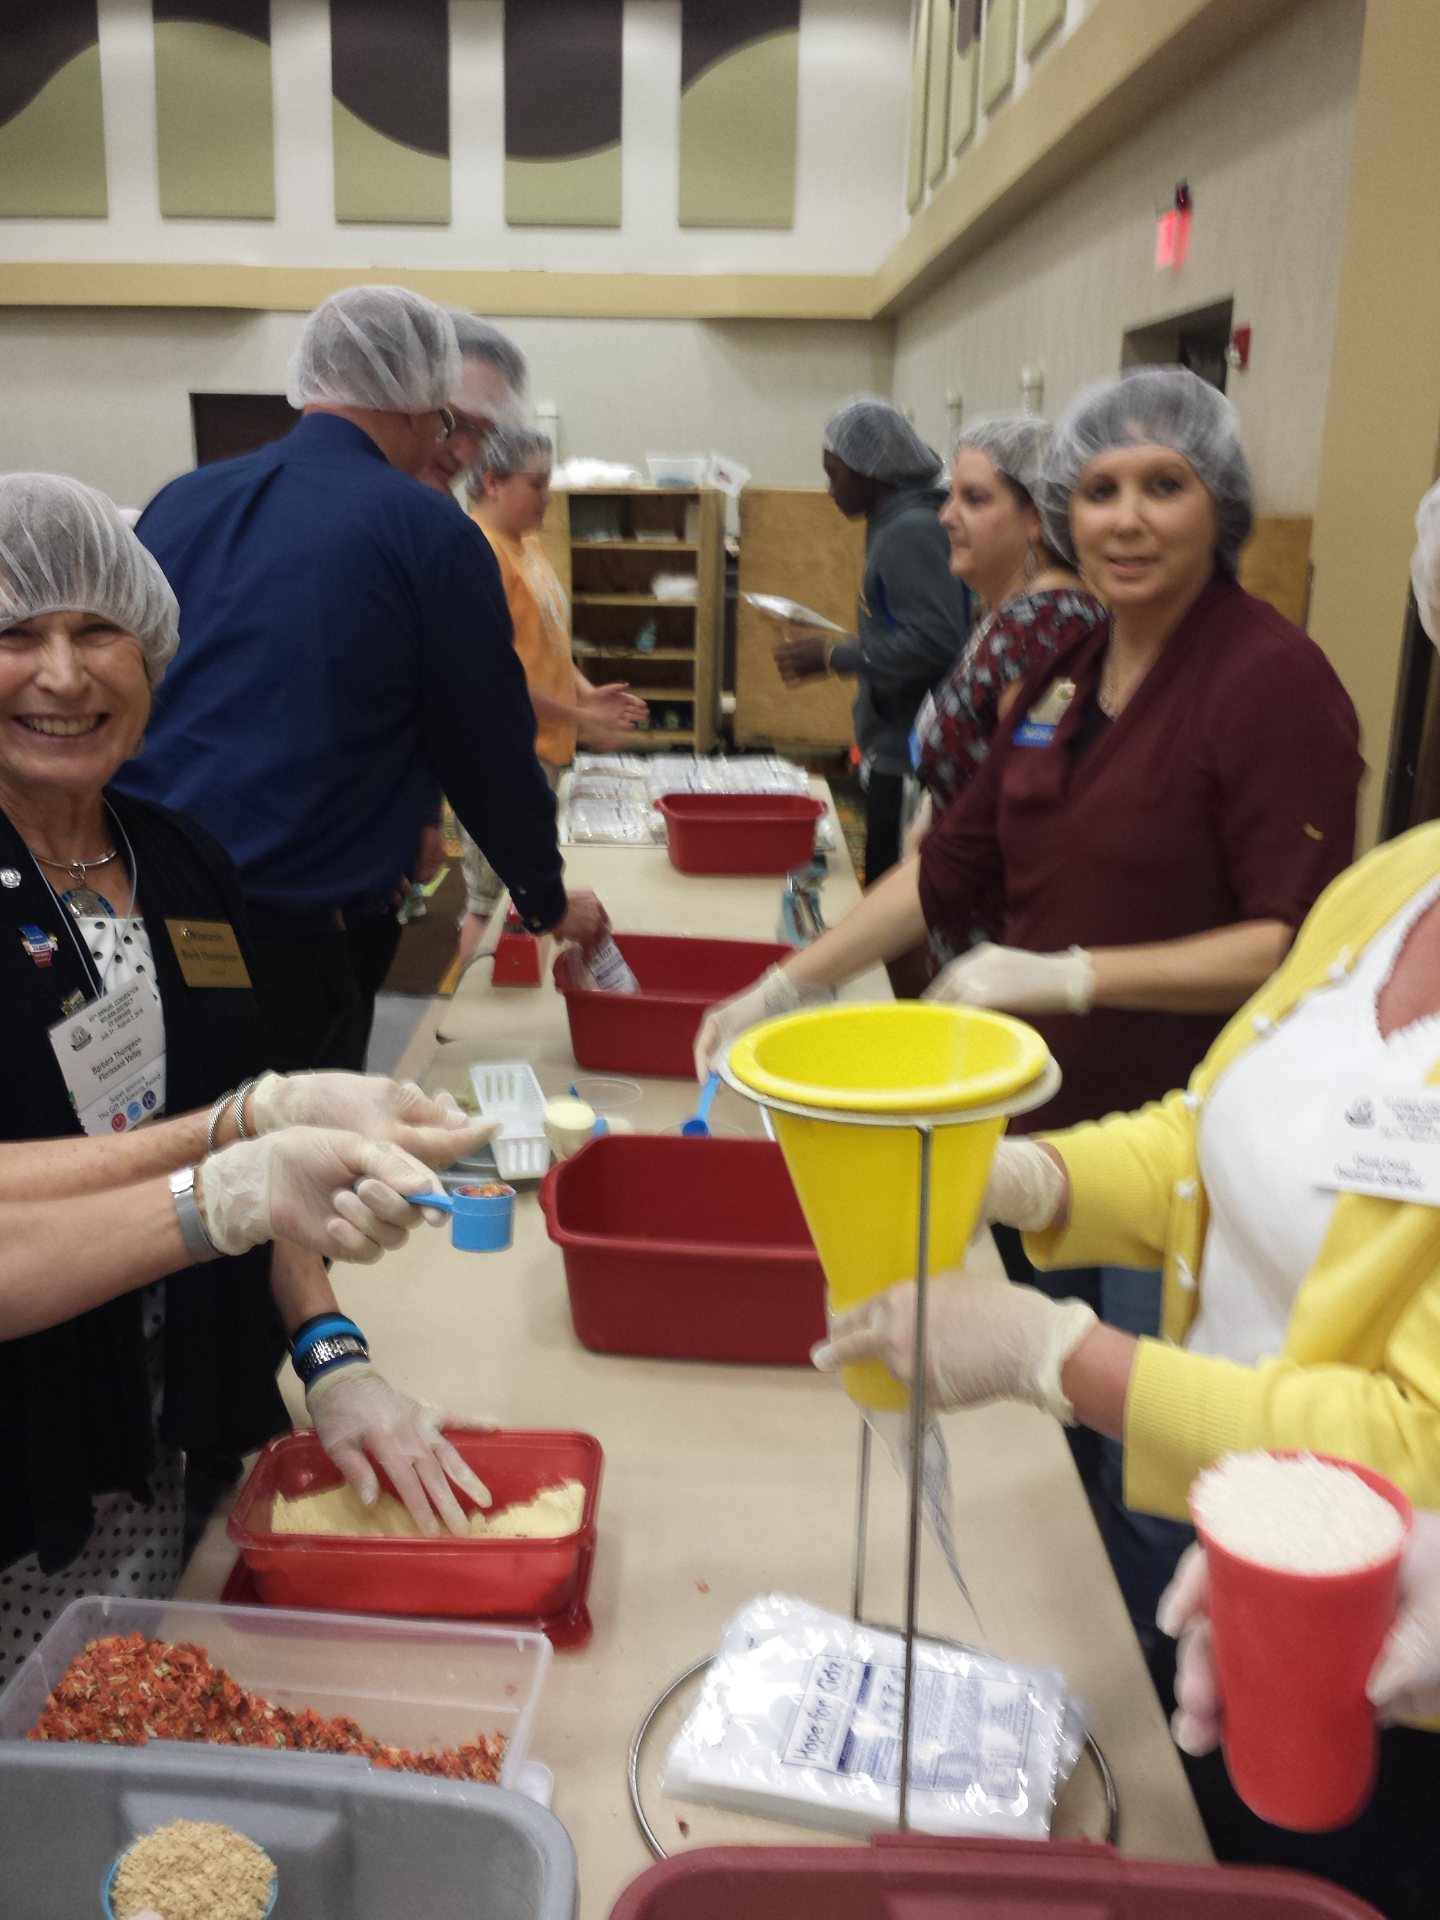 Meals for Boys & Girls Clubs